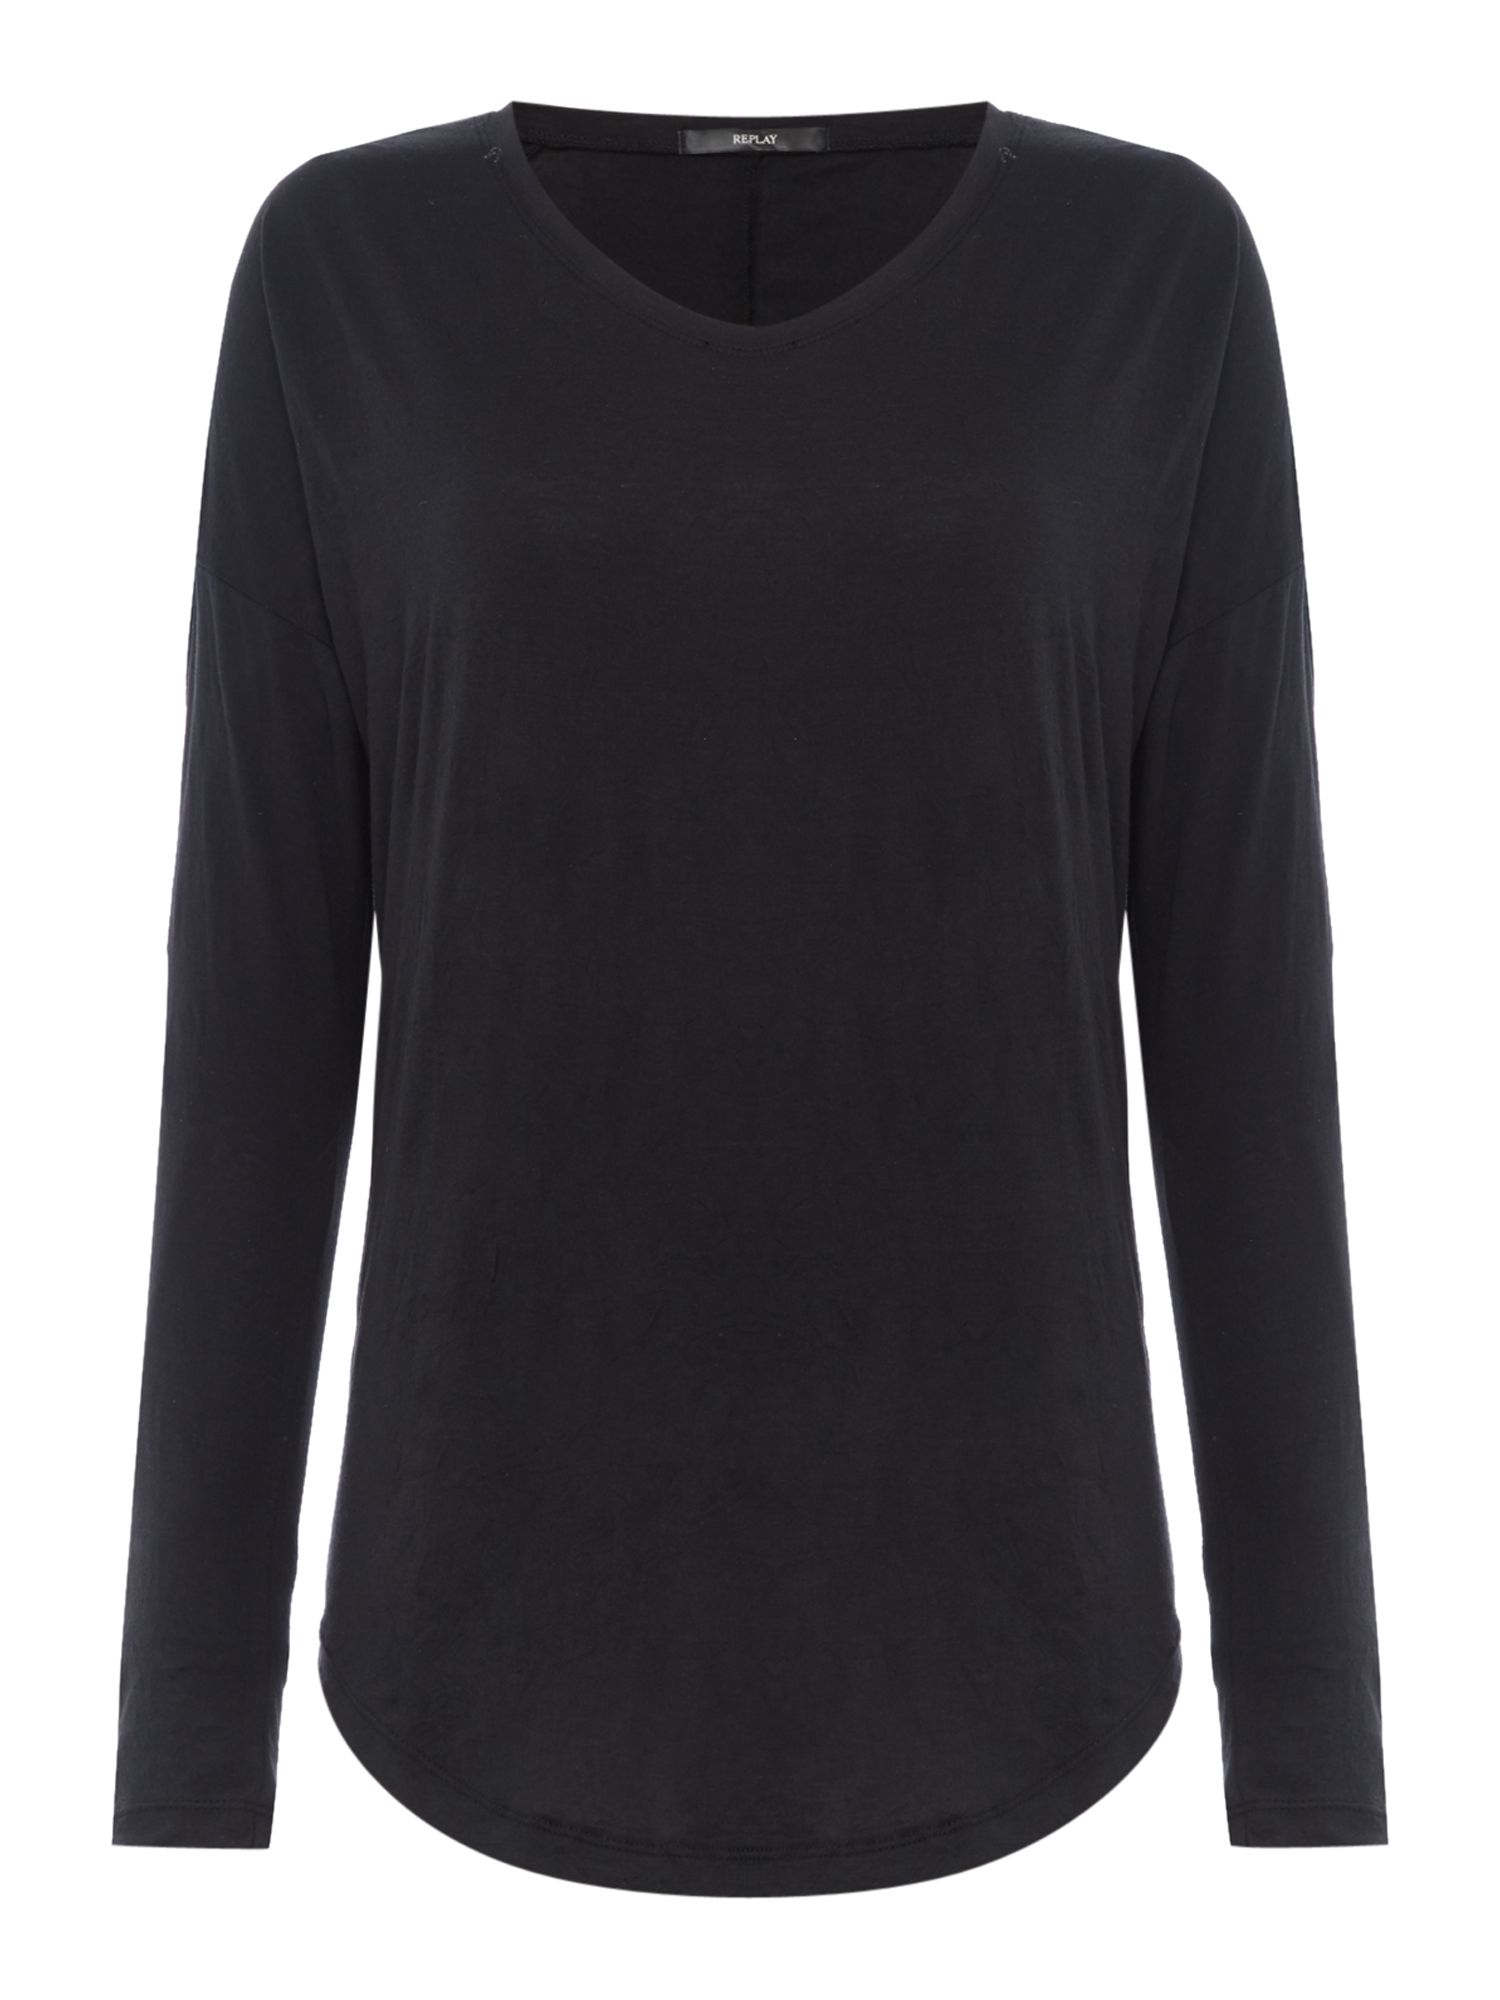 Replay Comfort-fit cotton T-shirt, Black